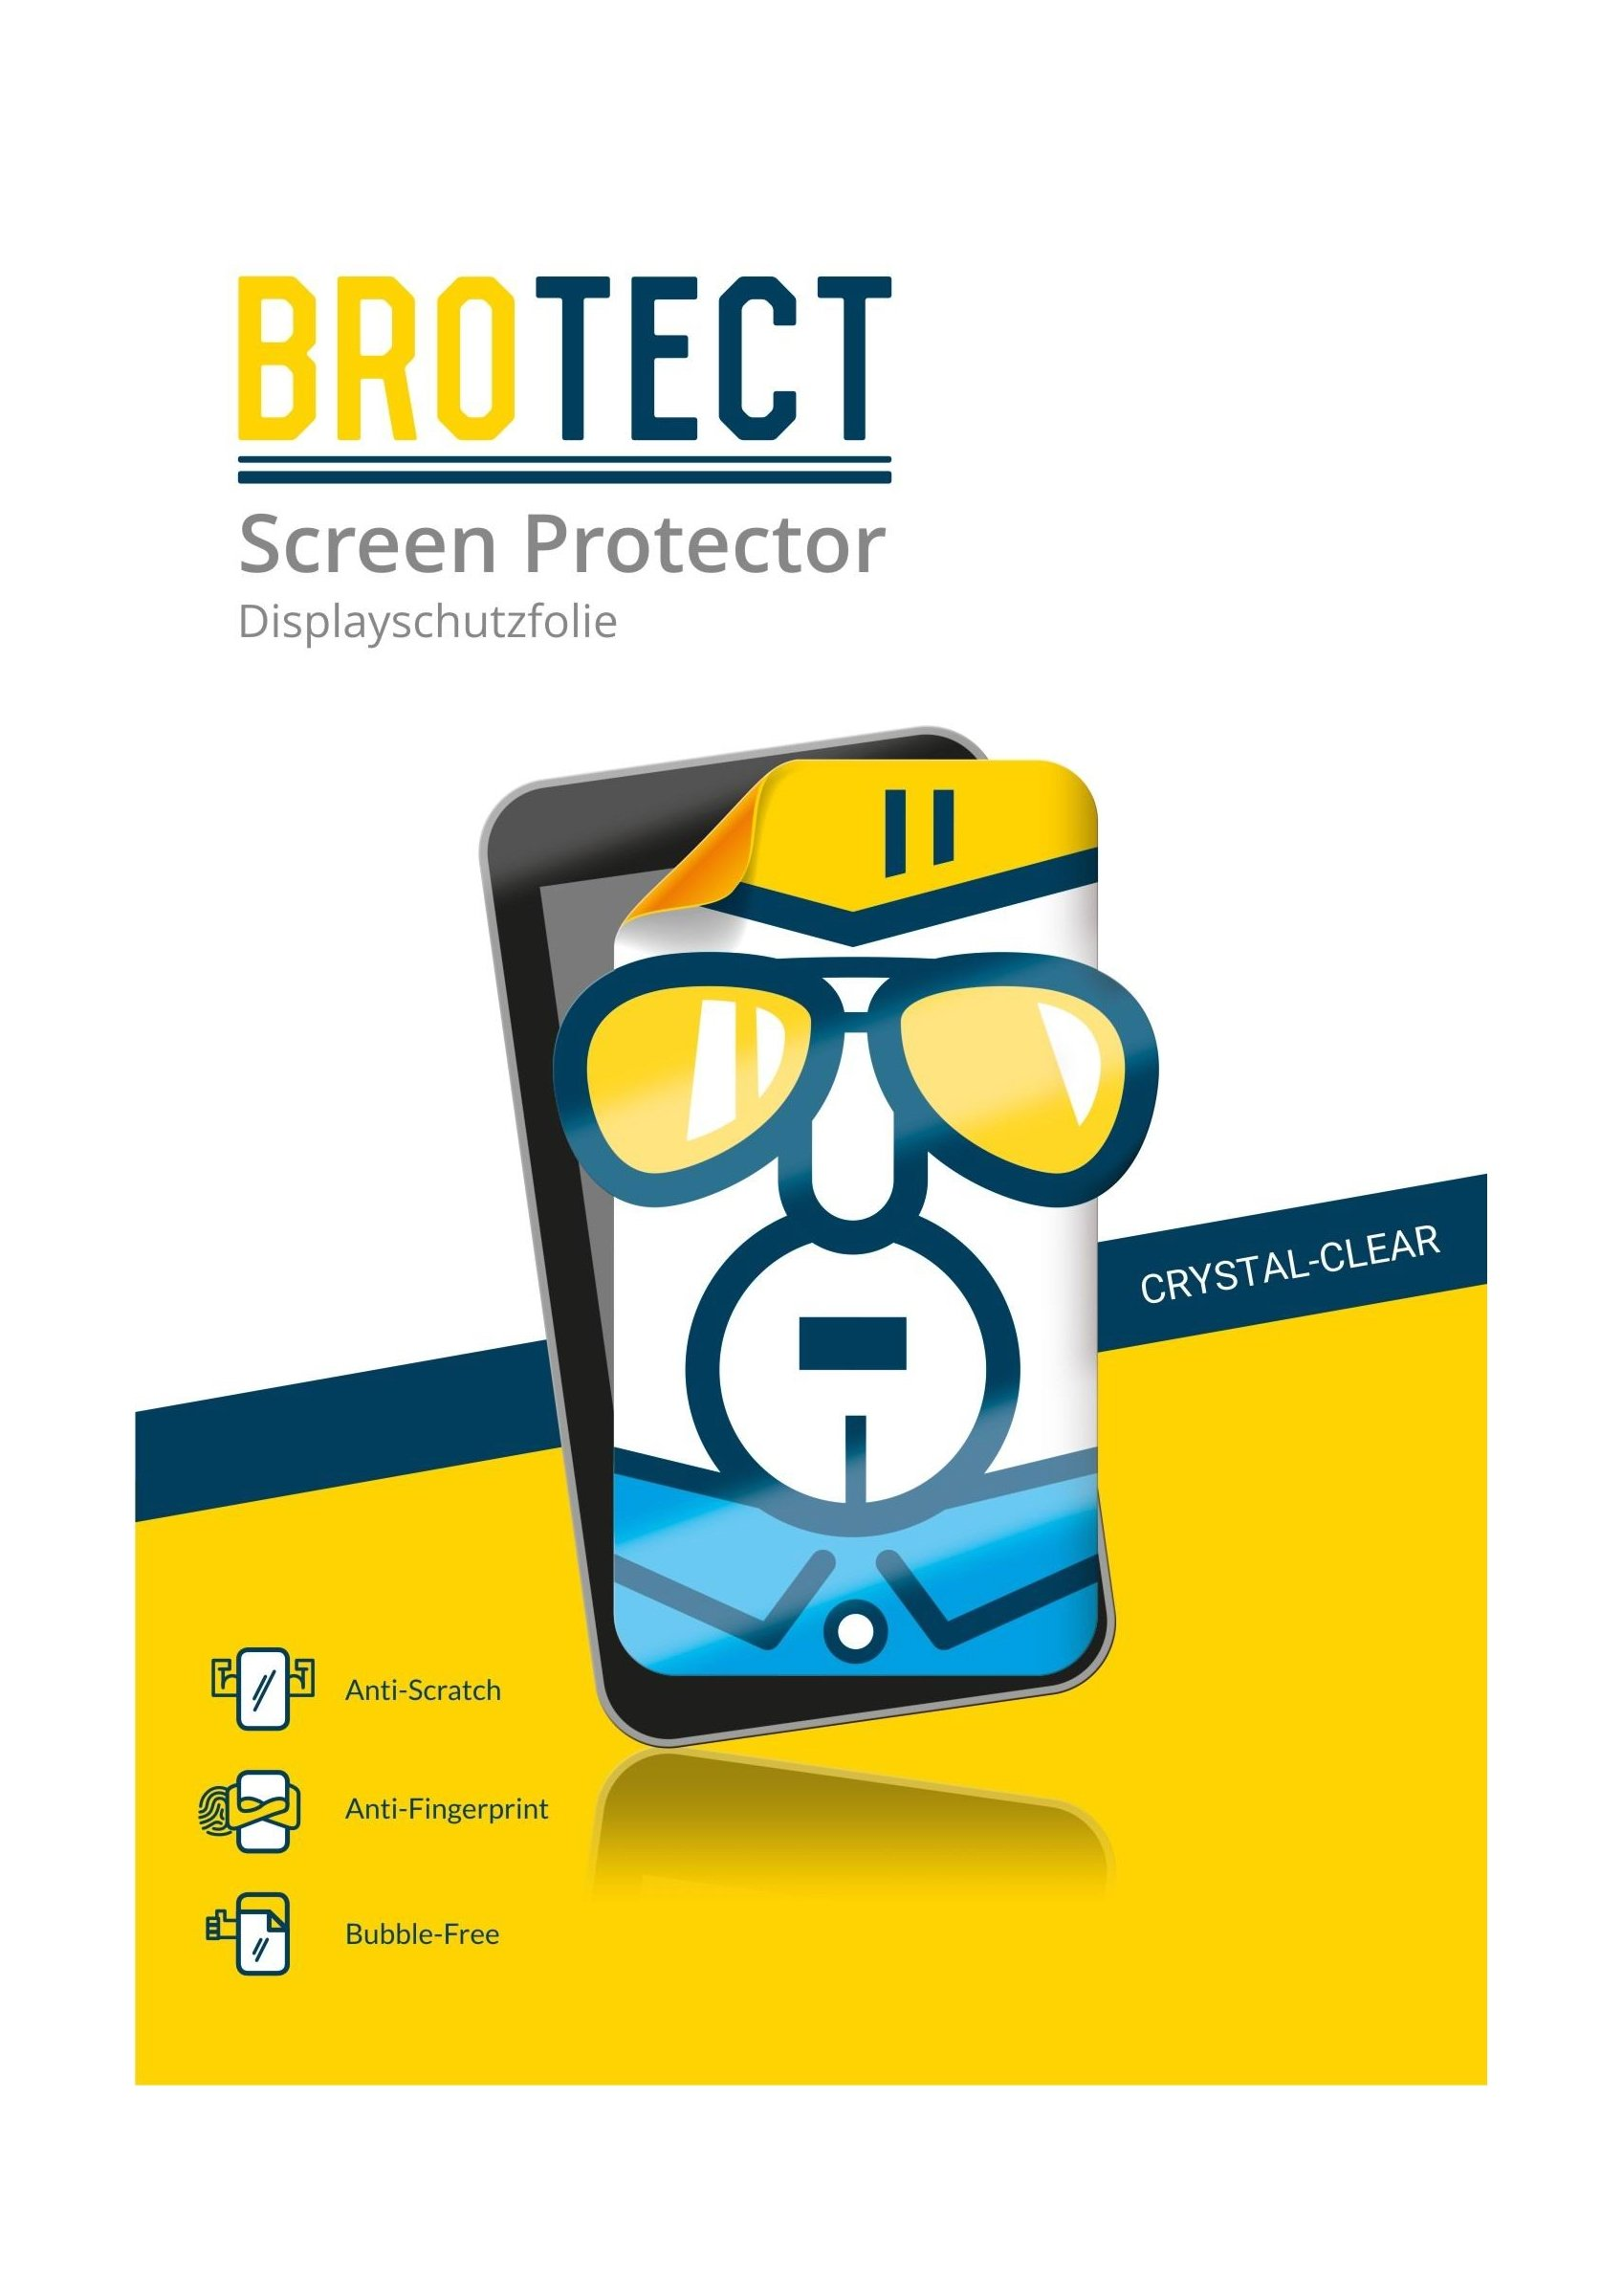 2X BROTECT HD-Clear Screen Protector for Pidion BP80, Crystal-Clear, Hard-Coated, Dirt-Repellent